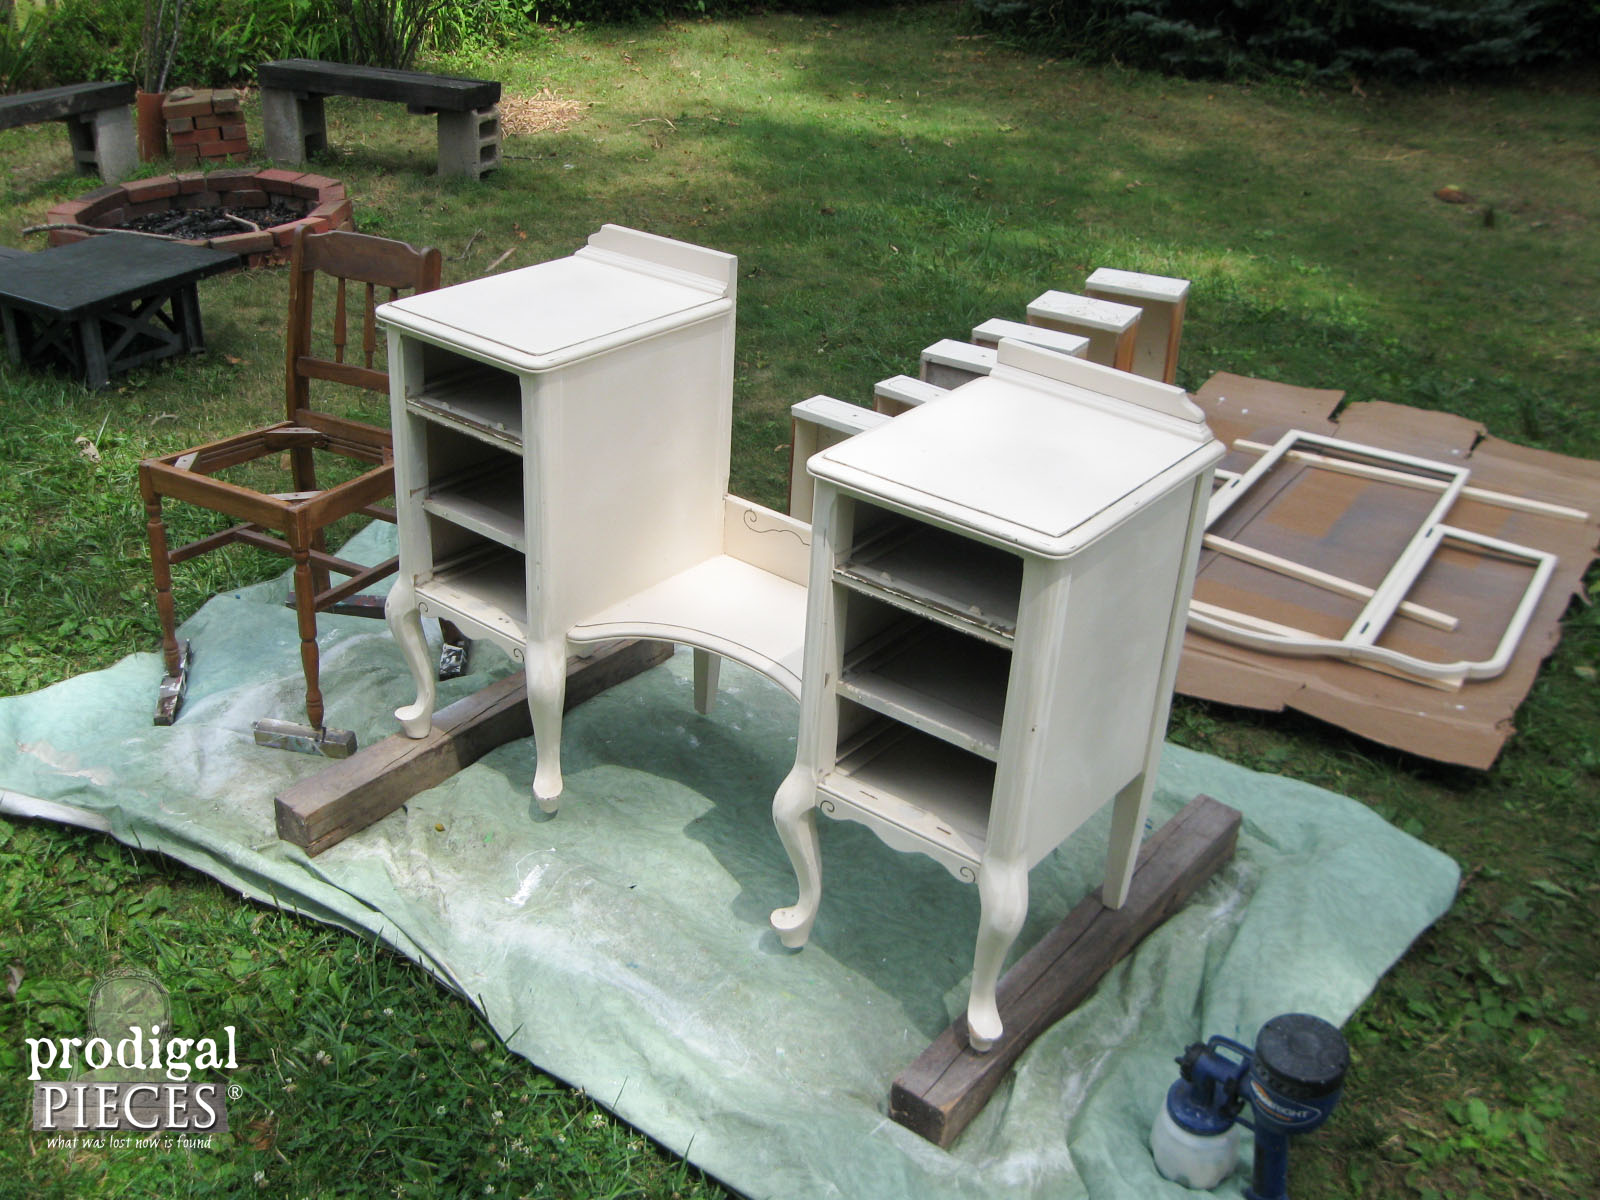 Spray Painting Vanity for Custom Furniture Finish | Prodigal Pieces | www.prodigalpieces.com